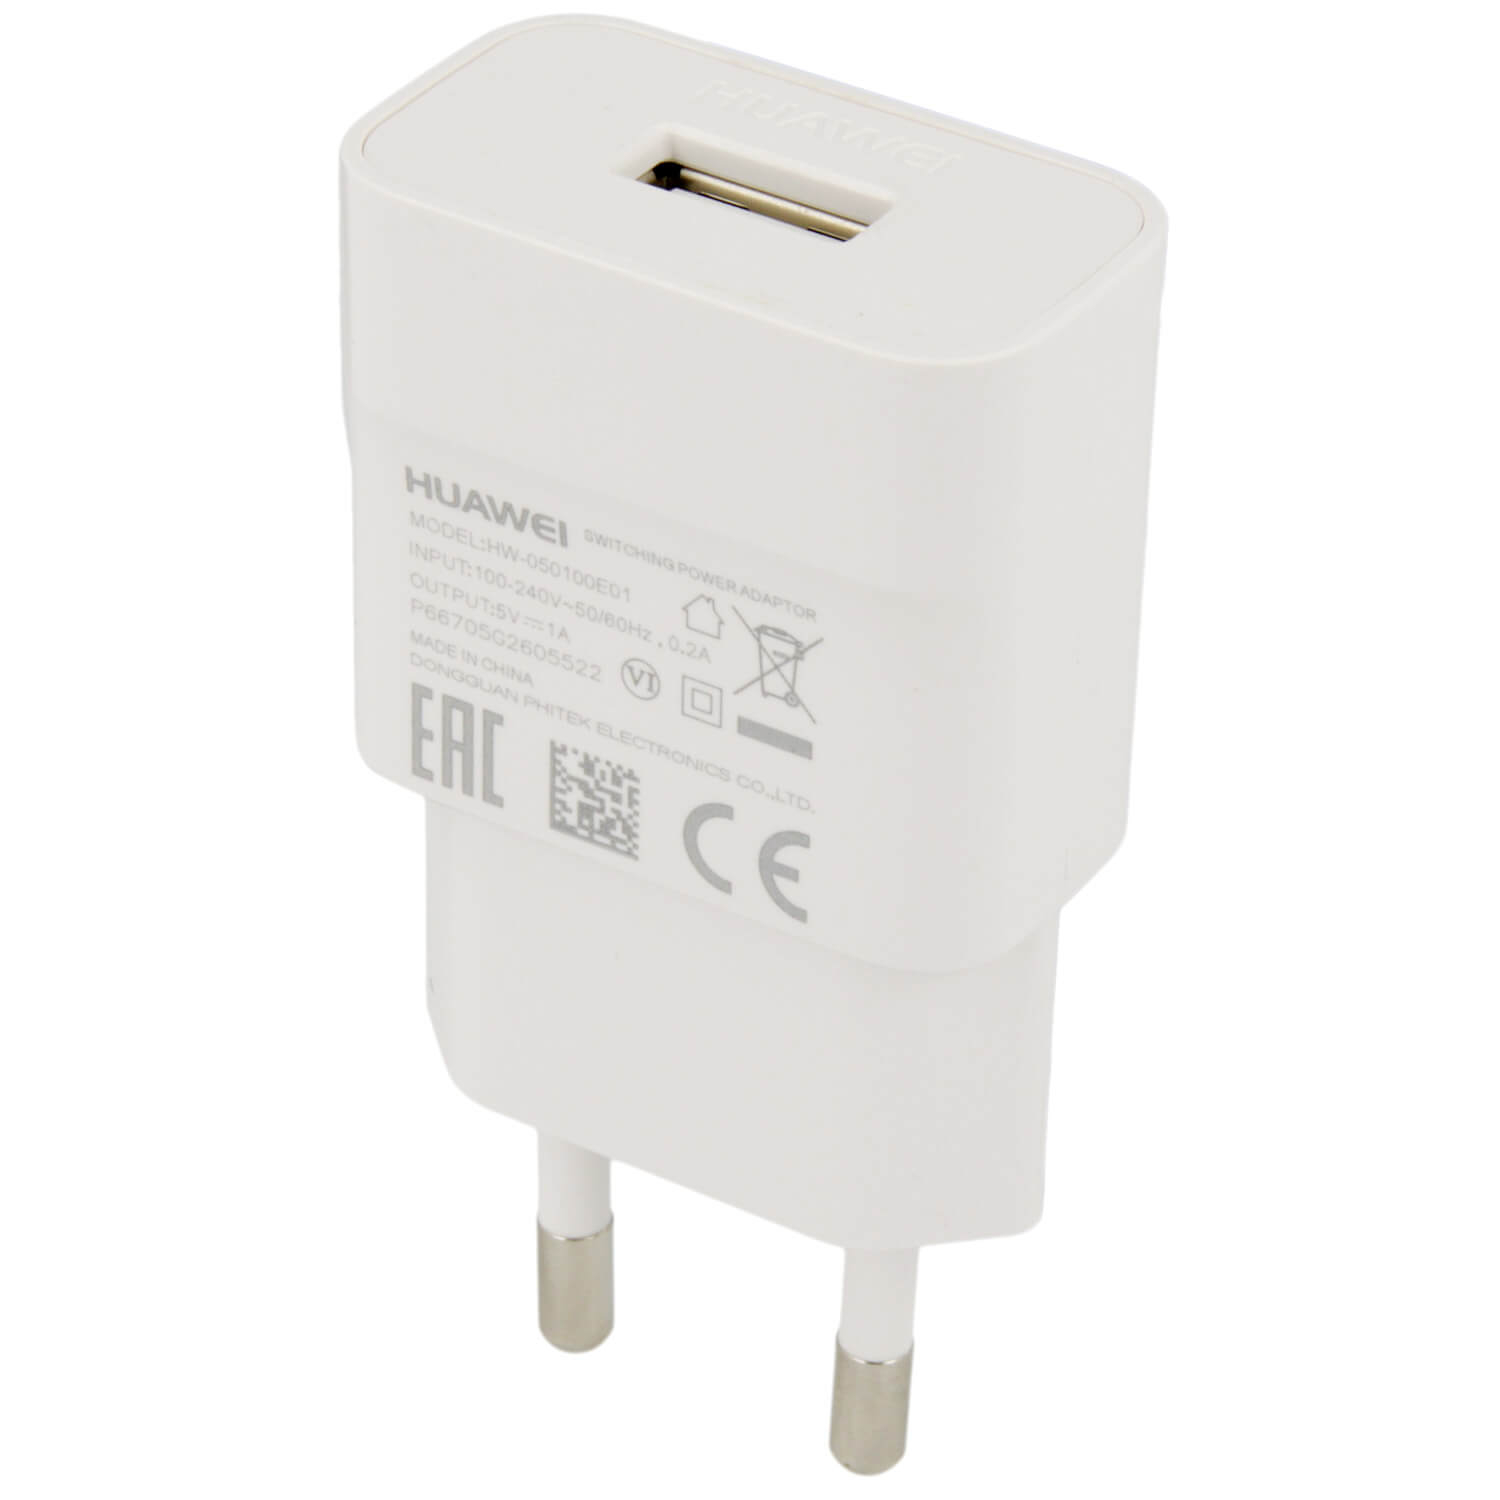 Huawei Travel Charger Hw 050100e01 1000ma White Price